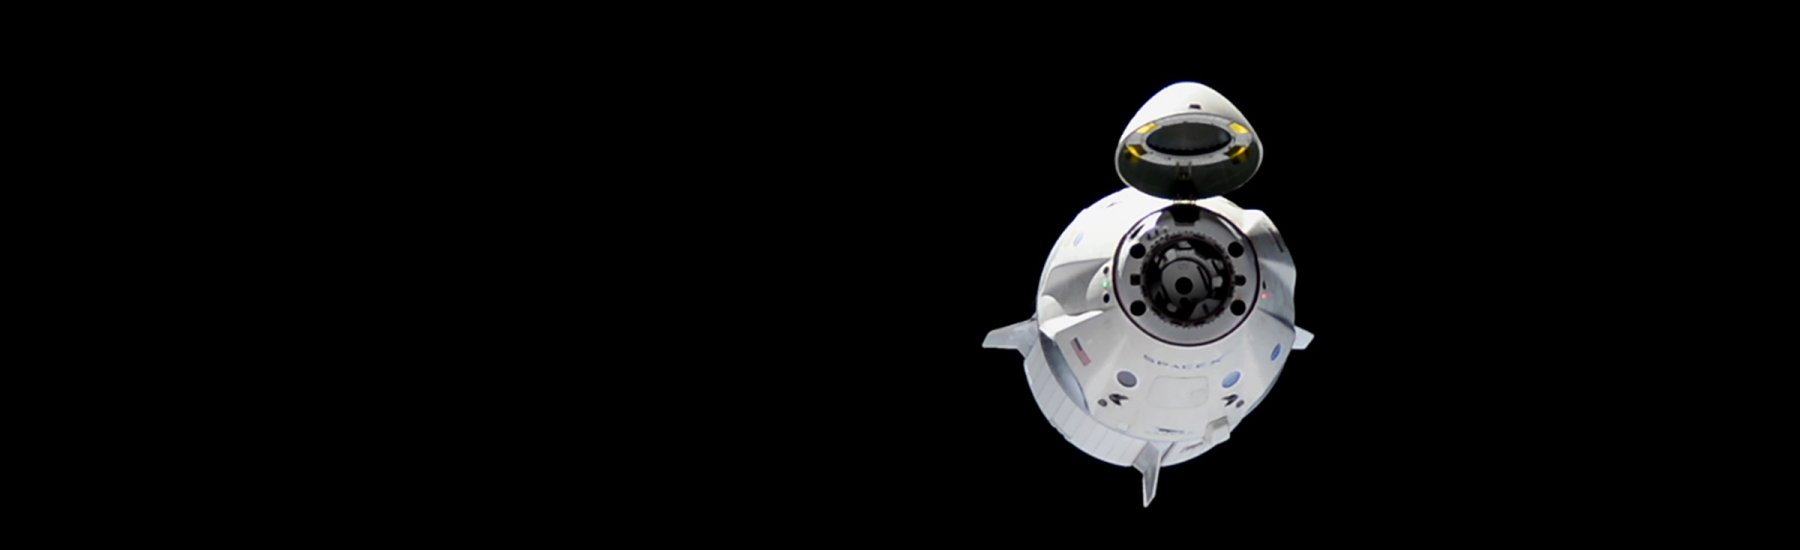 SpaceX to Launch Astronauts + ISS Docking Sim!